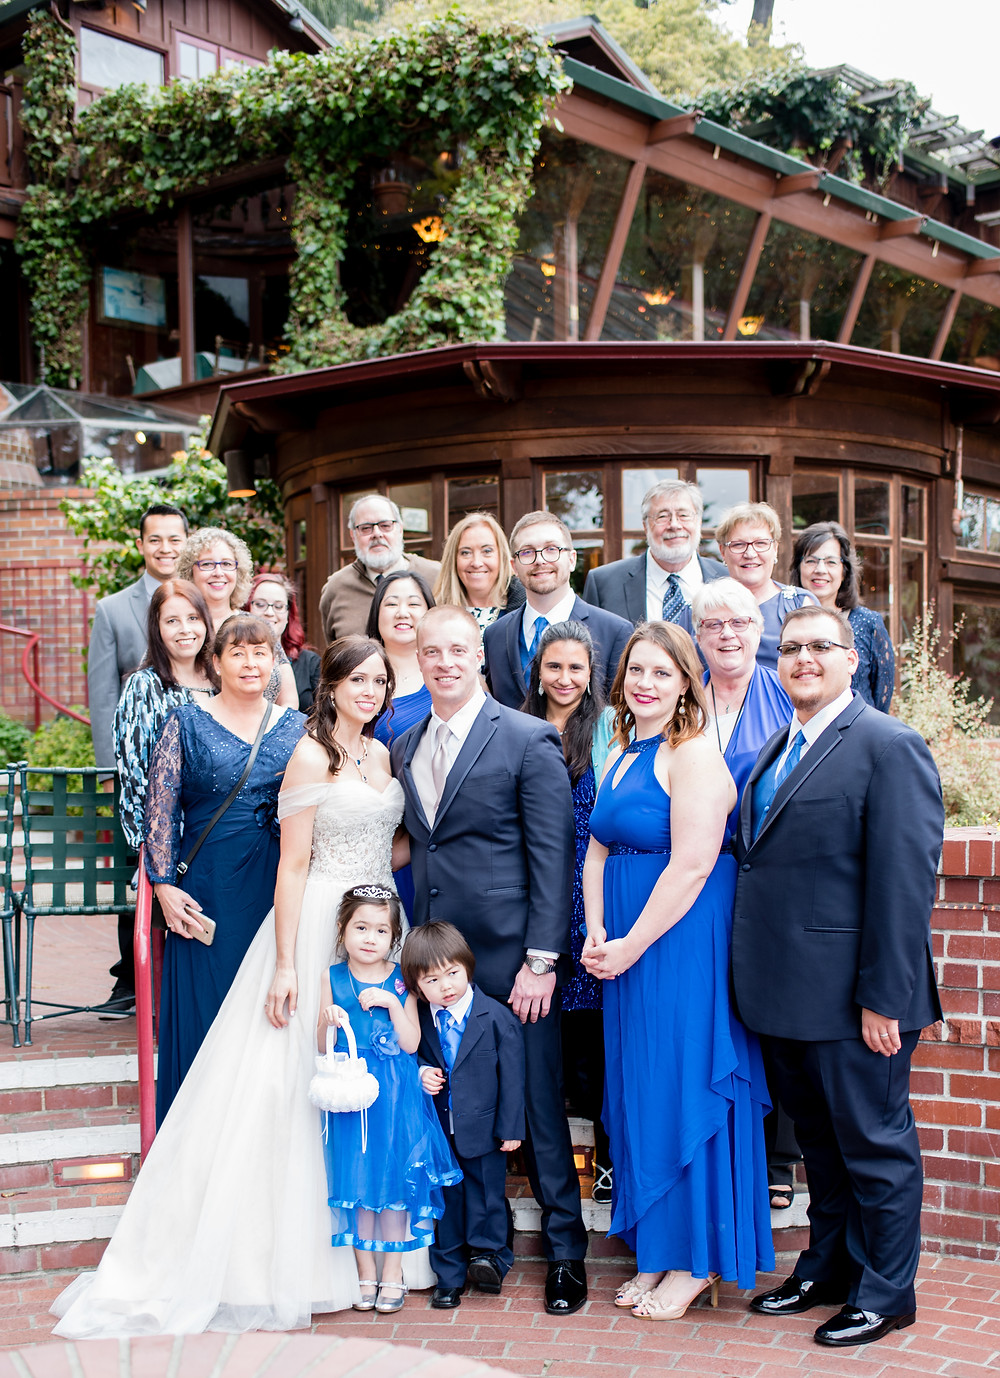 Santa cruz wedding, california wedding, santa cruz wedding photographer, california wedding photographer, las vegas wedding photographer, capitola ca, capitola, capitola wedding